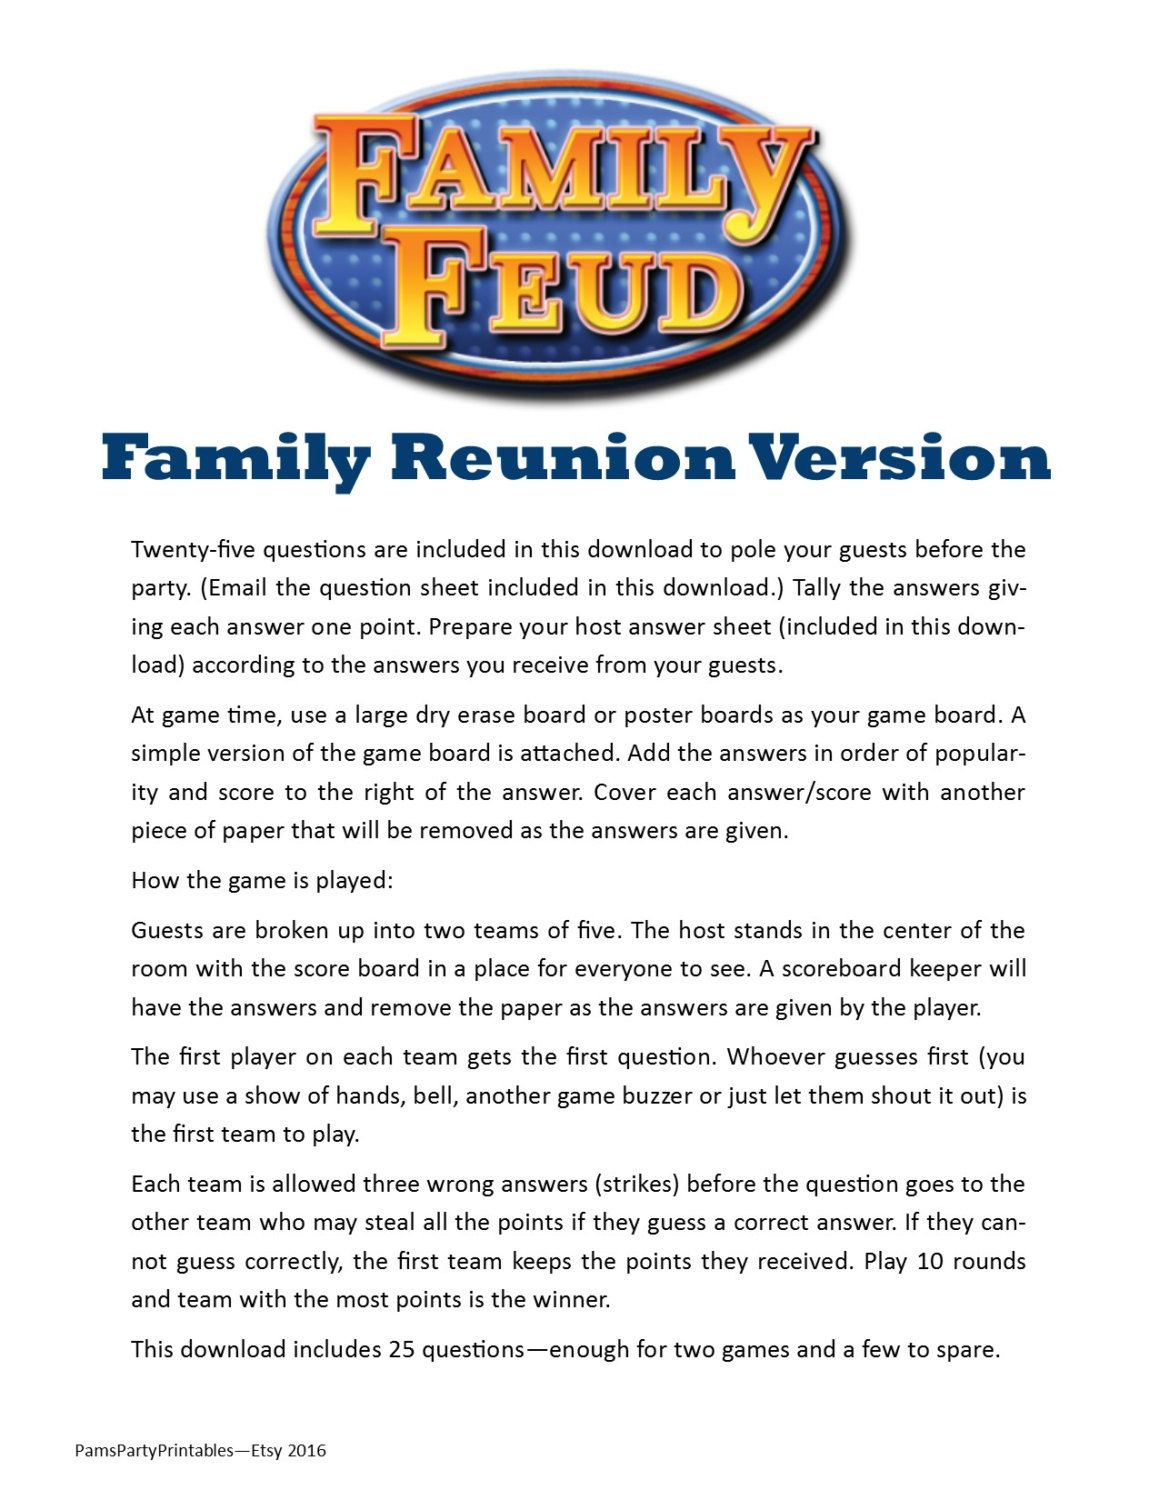 Family Reunion Feud Printable Picnic Fun Group By Pamspartyprintables On Etsy